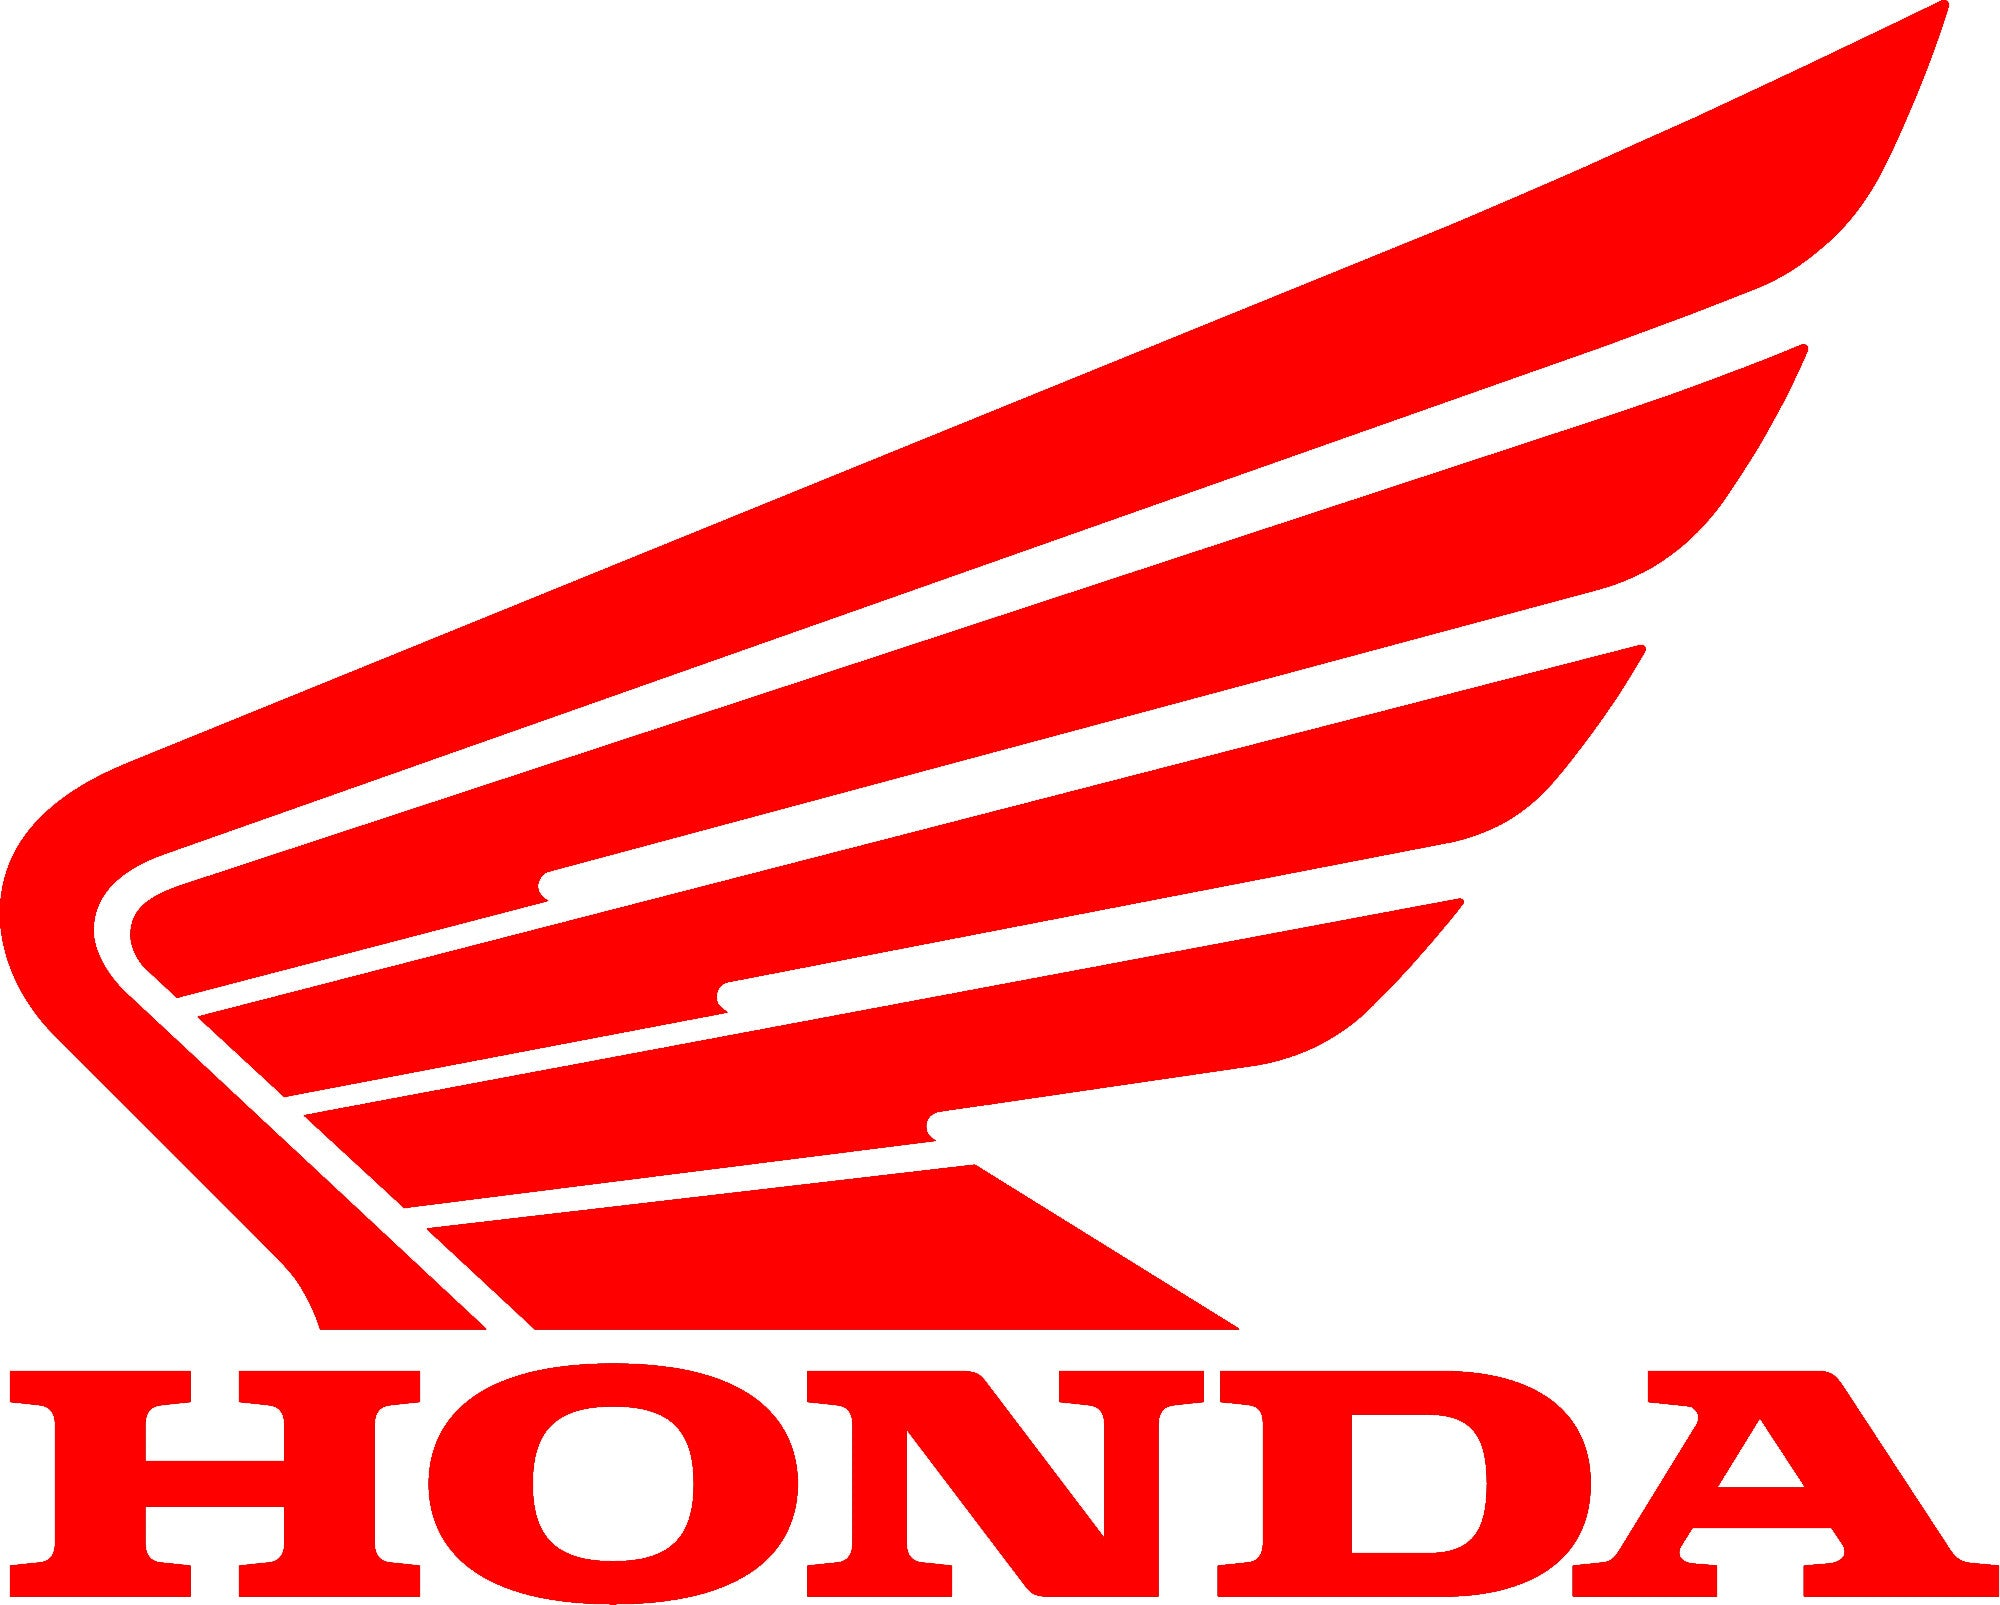 Honda Logo Decal  Sticker  Tacticalmindzm. Lettering Pack Lettering. Old Movie Theatre Signs. Valentine Murals. Maroon Decals. Self Harm Signs. Speech Delay Signs. Grand Prix Stickers. Tiny Dot Stickers